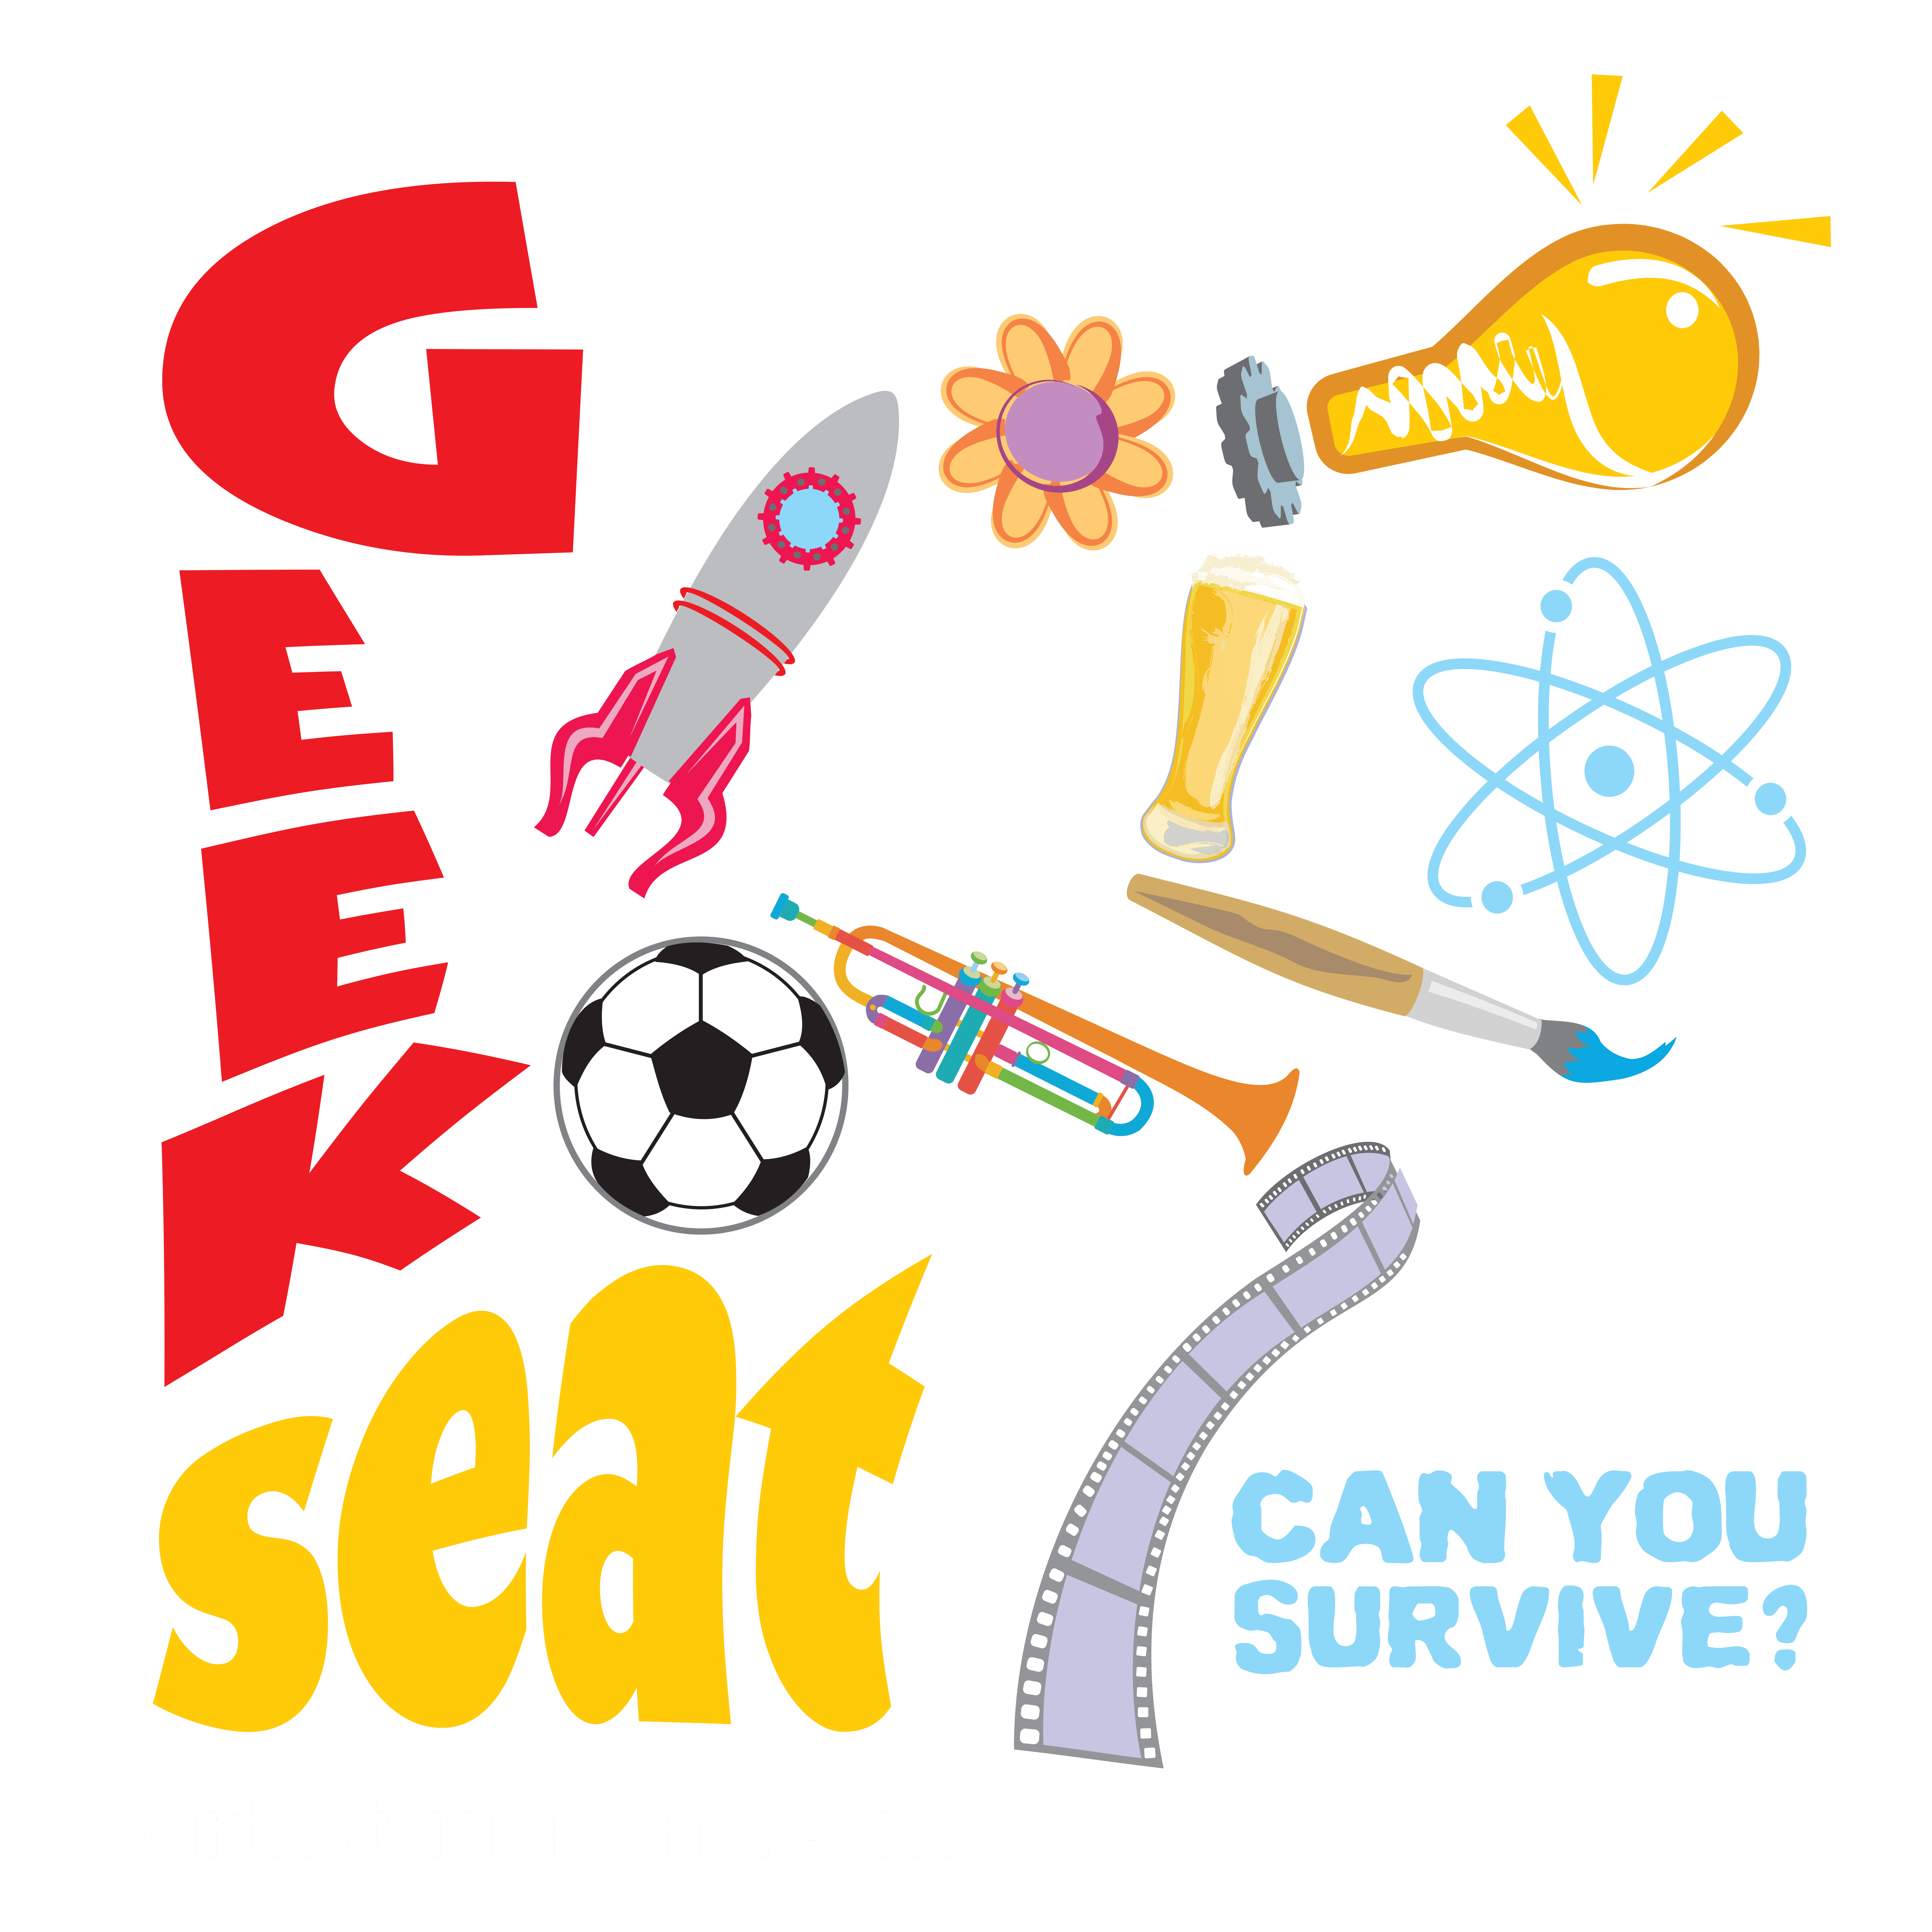 Can You Survive the Geek Seat?